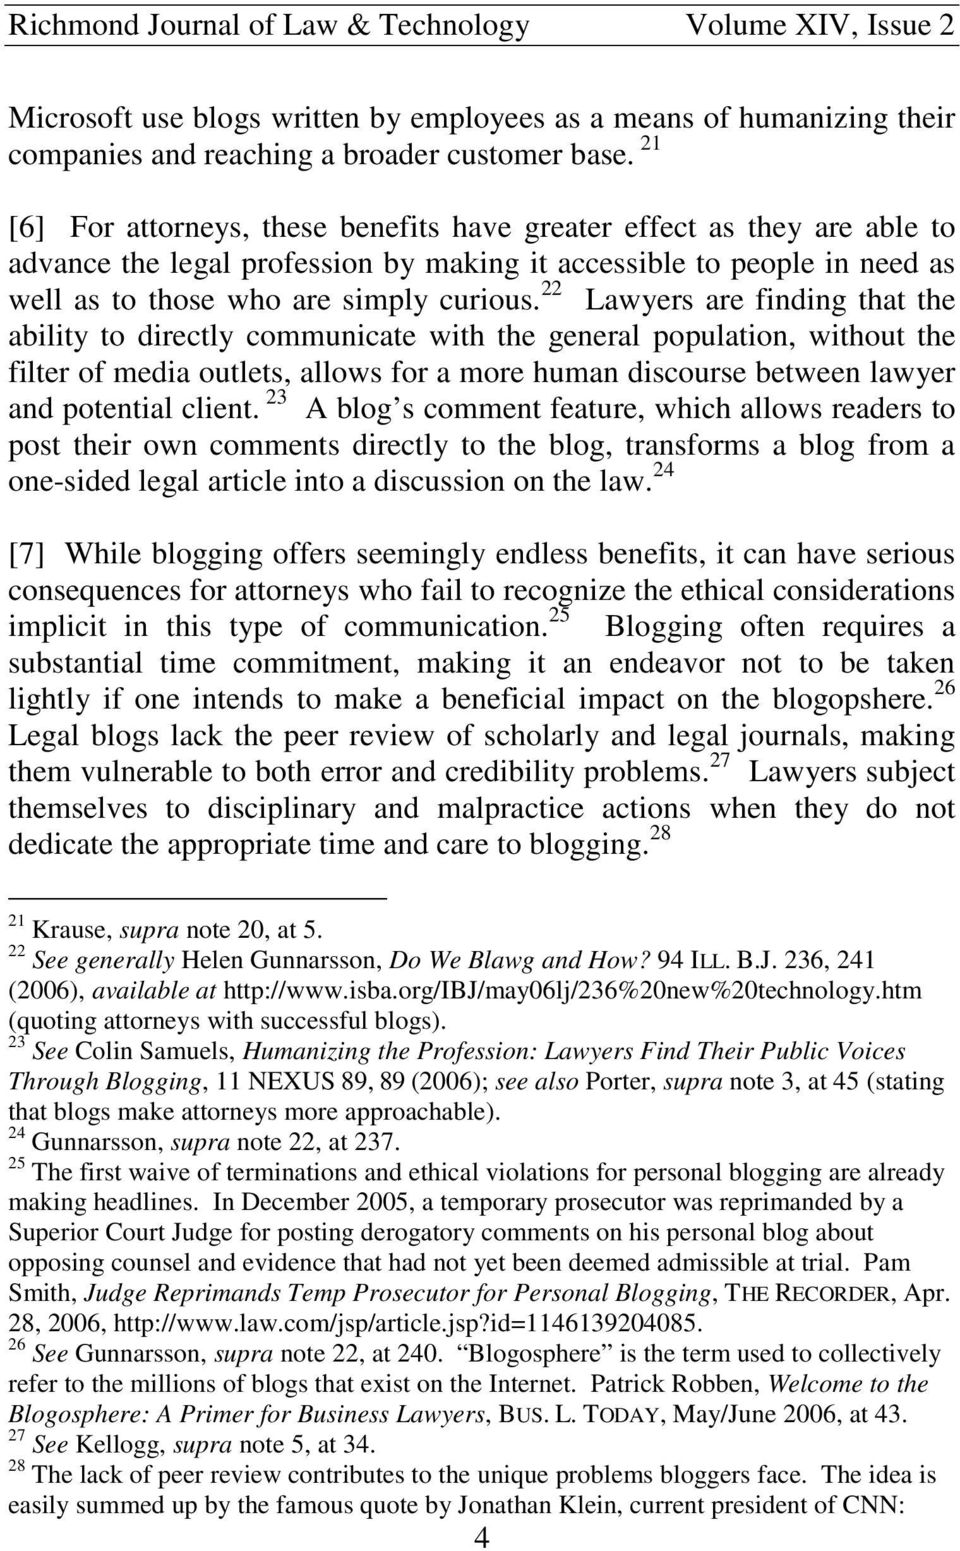 22 Lawyers are finding that the ability to directly communicate with the general population, without the filter of media outlets, allows for a more human discourse between lawyer and potential client.